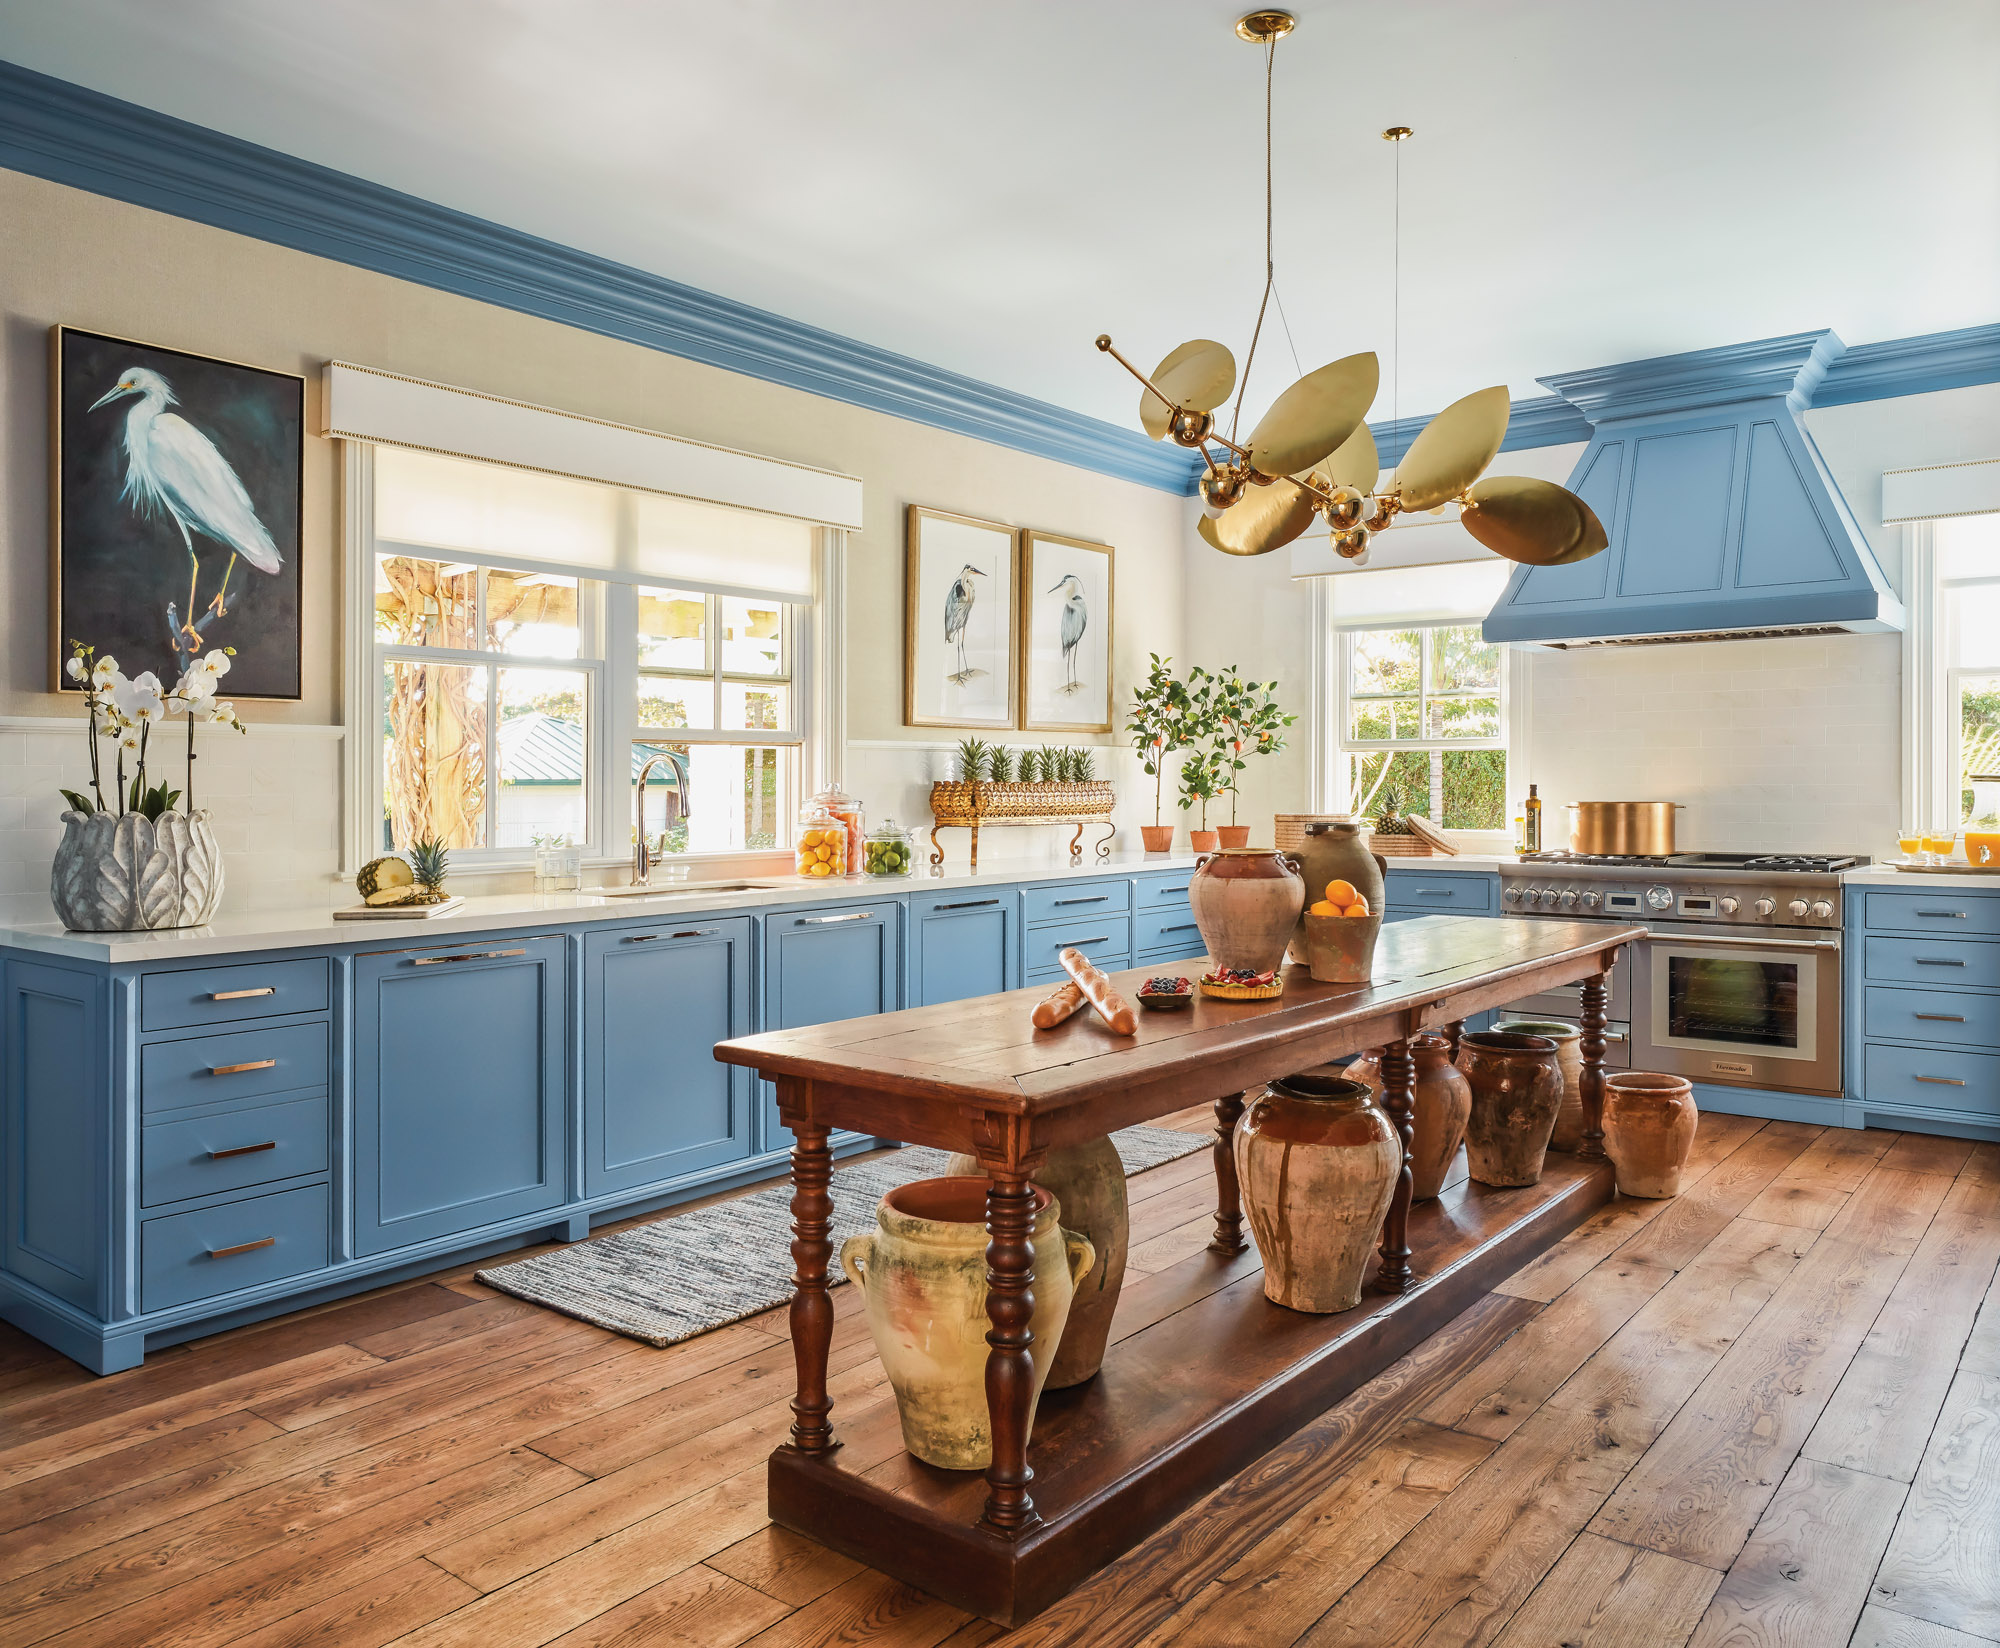 Blue Dragon by Benjamin Moore paint, Palm Beach kitchen